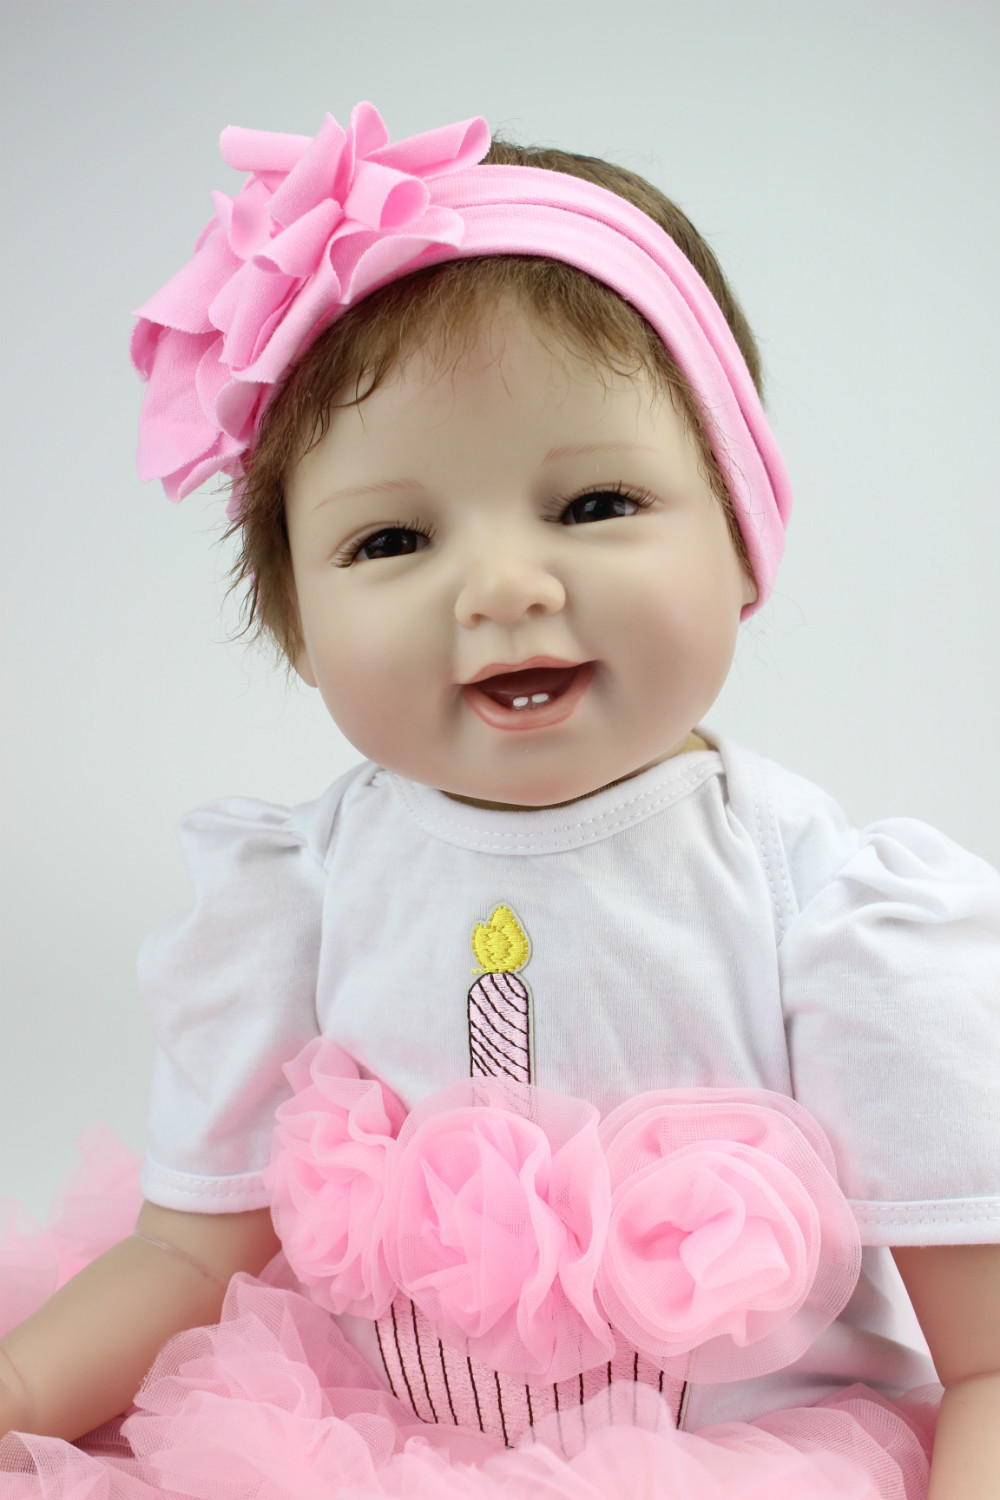 2014 NEW hot sale lifelike reborn baby doll wholesale baby dolls fashion doll Christmas gift new year gift